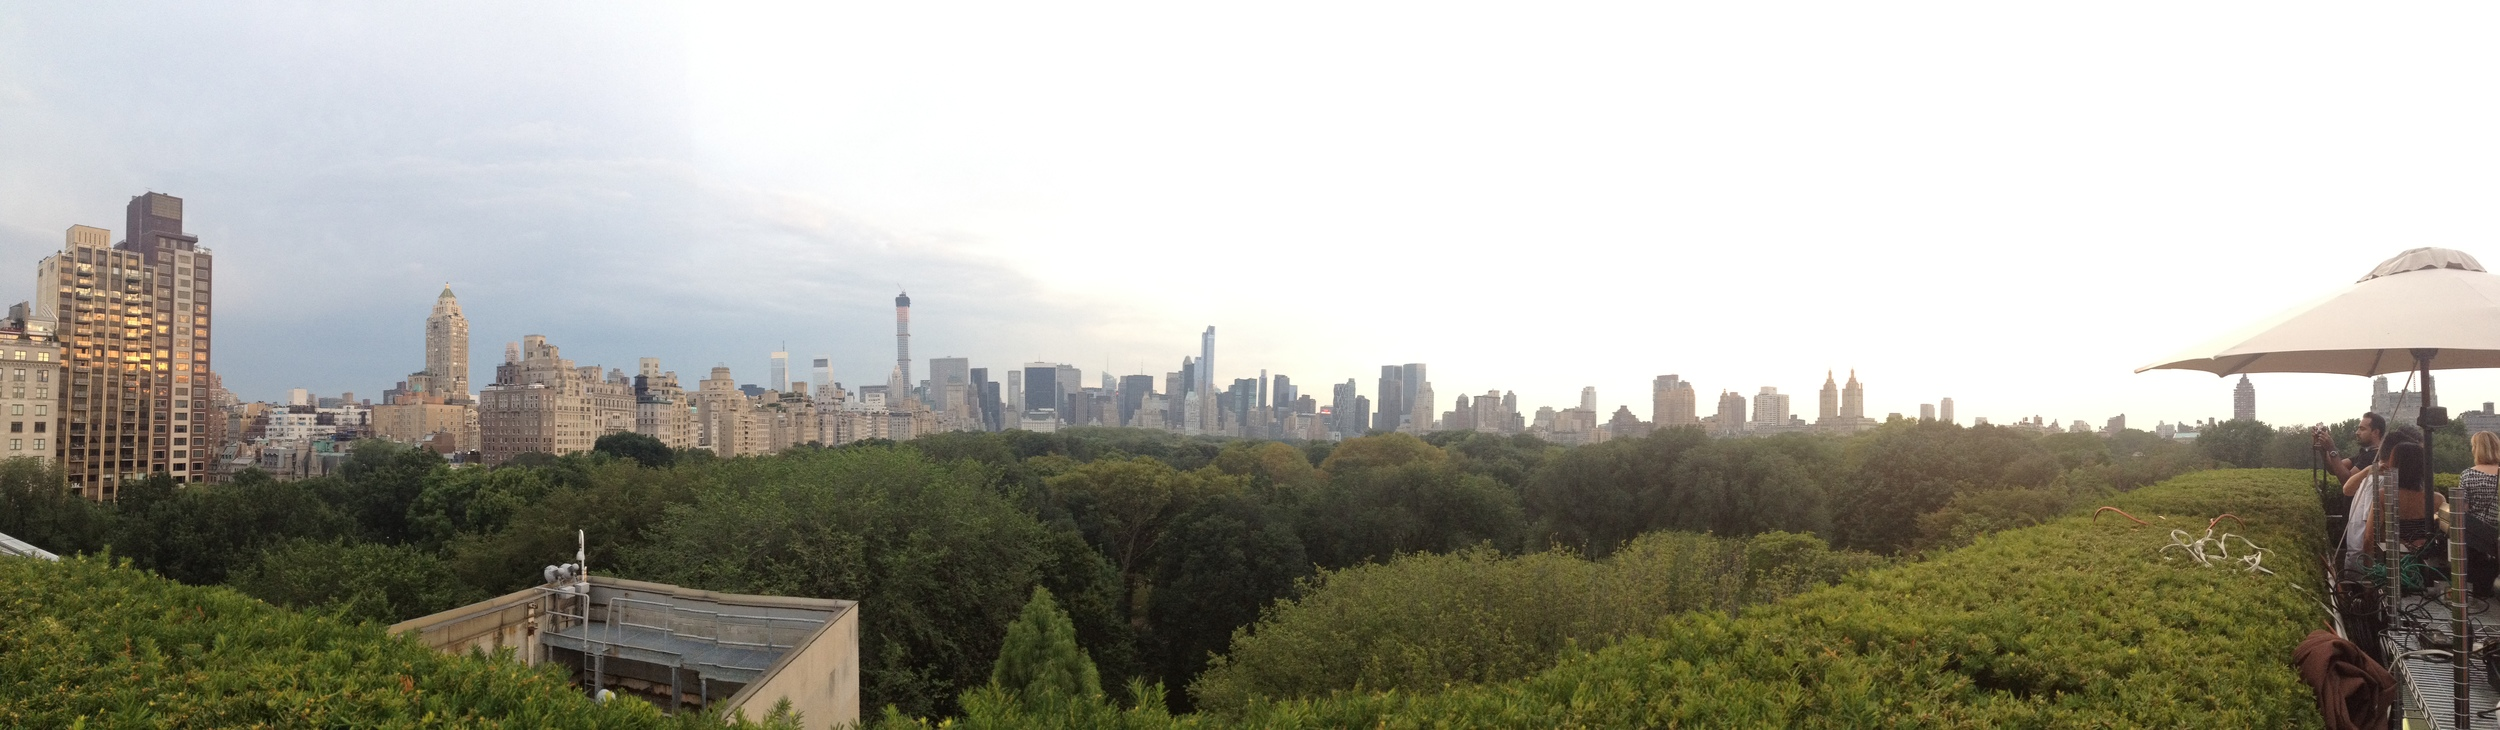 Panorama view from the top of the Metropolitan Museum of Art